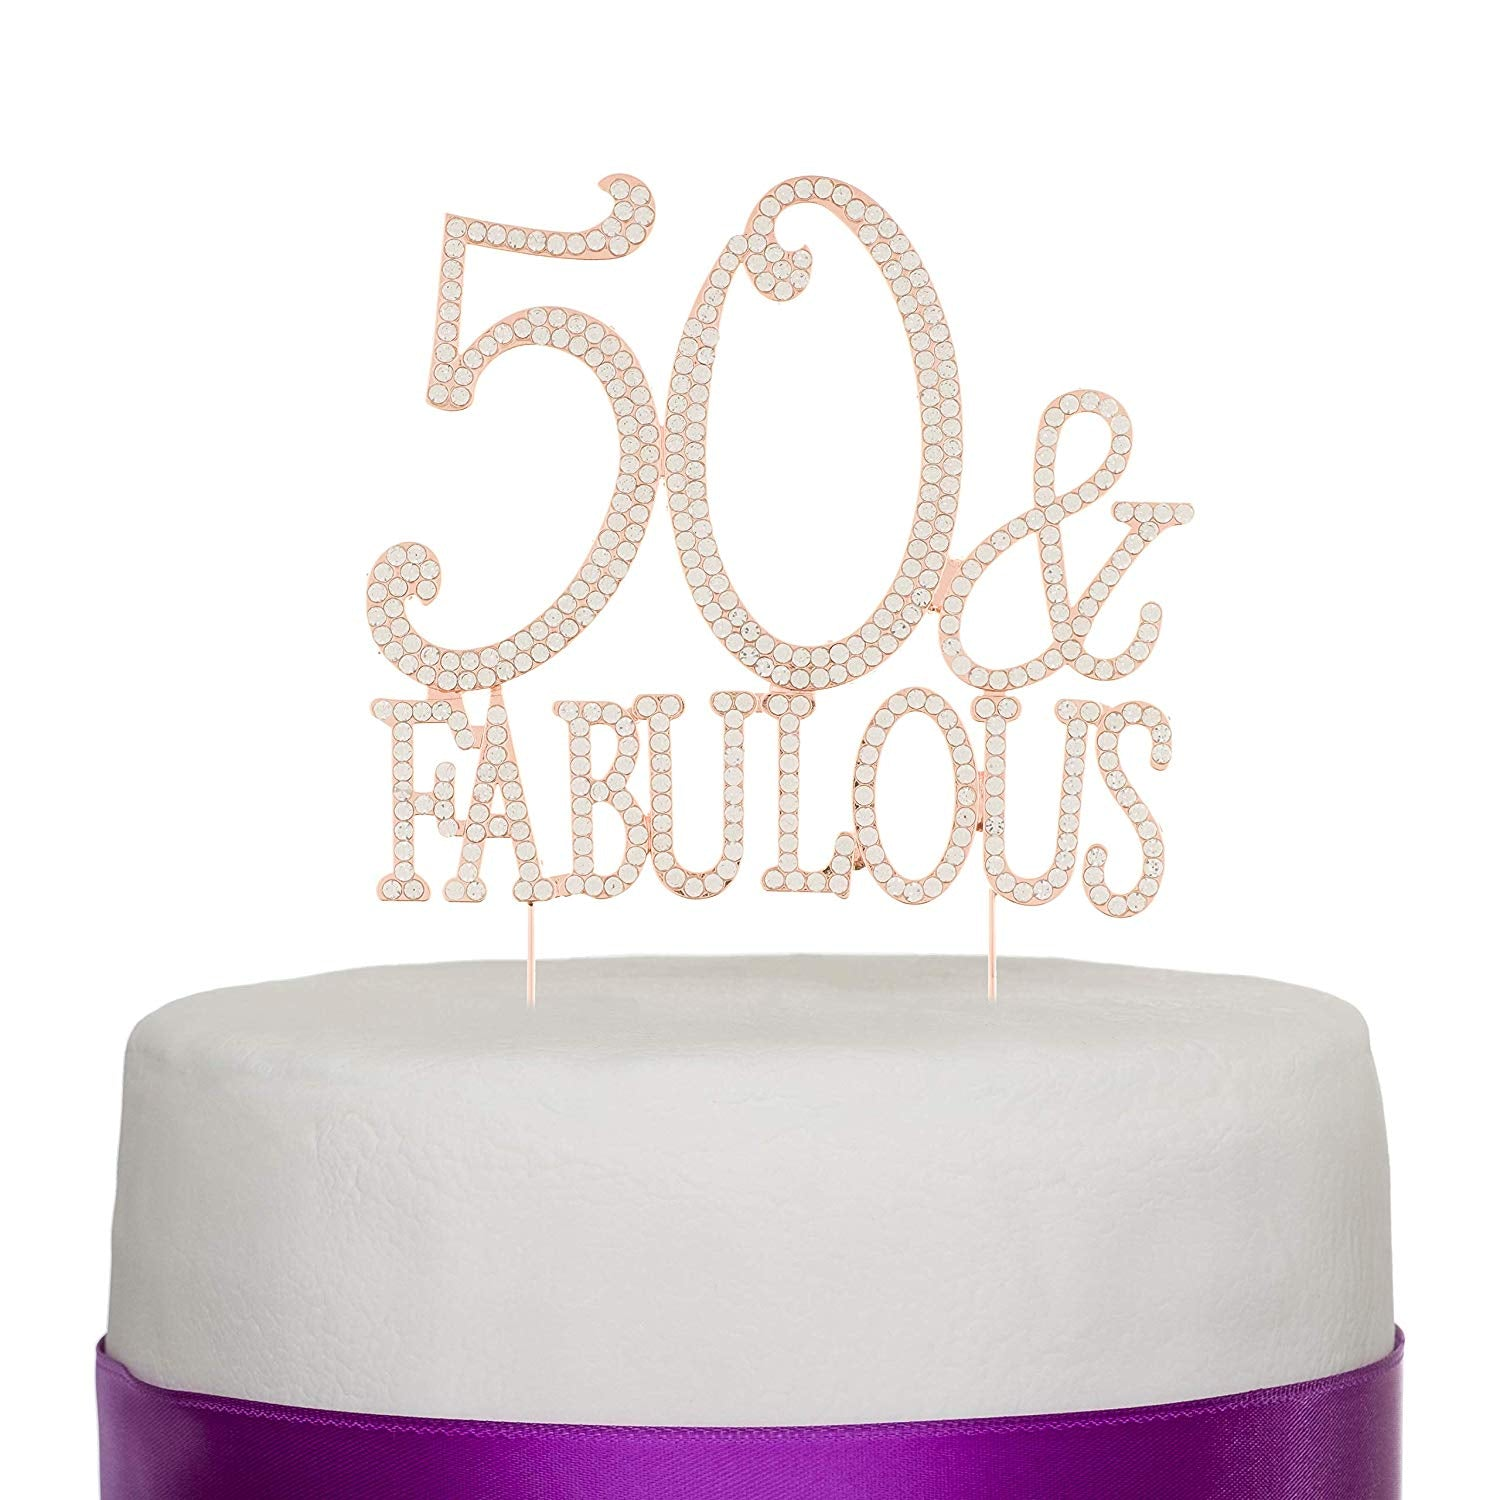 50 & Fabulous Cake Topper - Rose Gold